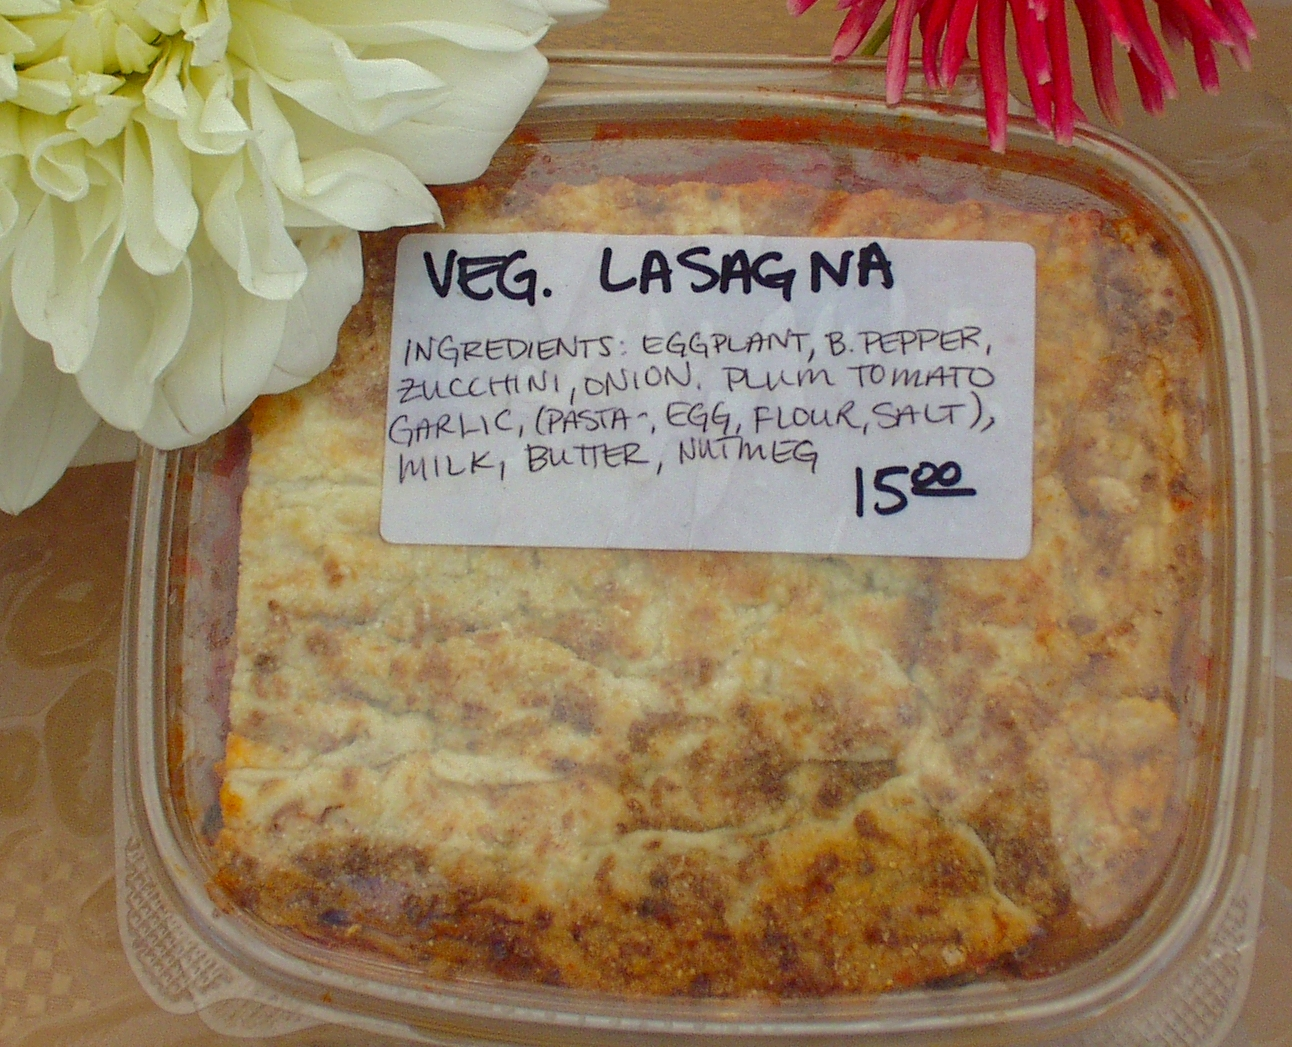 Vegetarian lasagna from Pasteria Lucchese. Photo copyright 2009 by Zachary D. Lyons.